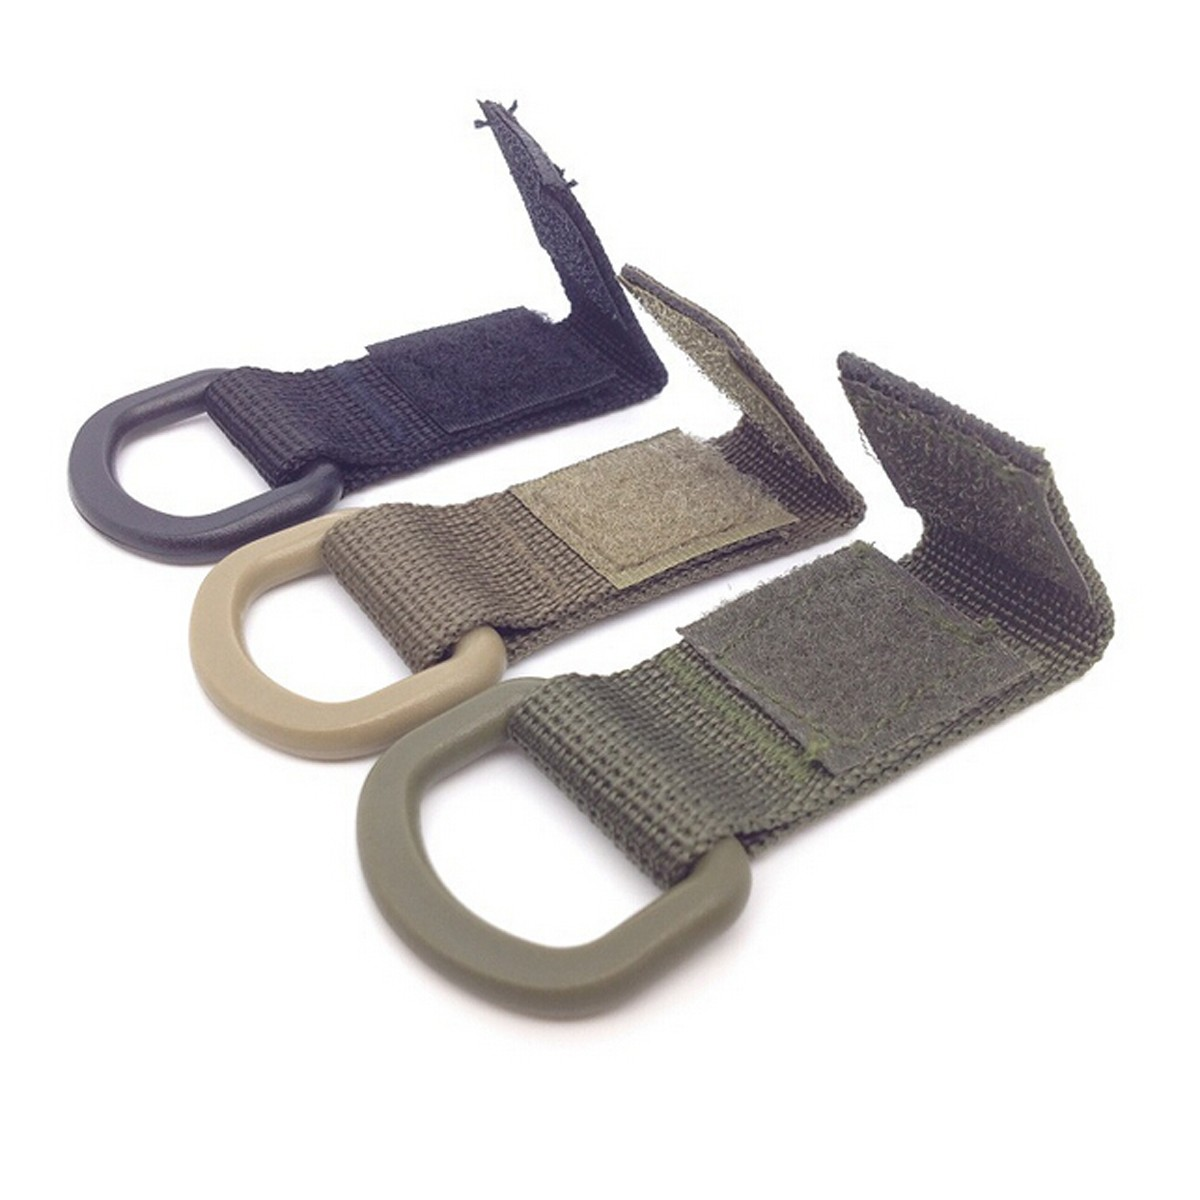 Military Tactical Carabiner Nylon Strap Buckle Hook Belt Hanging Keychain D-shaped Ring Molle System